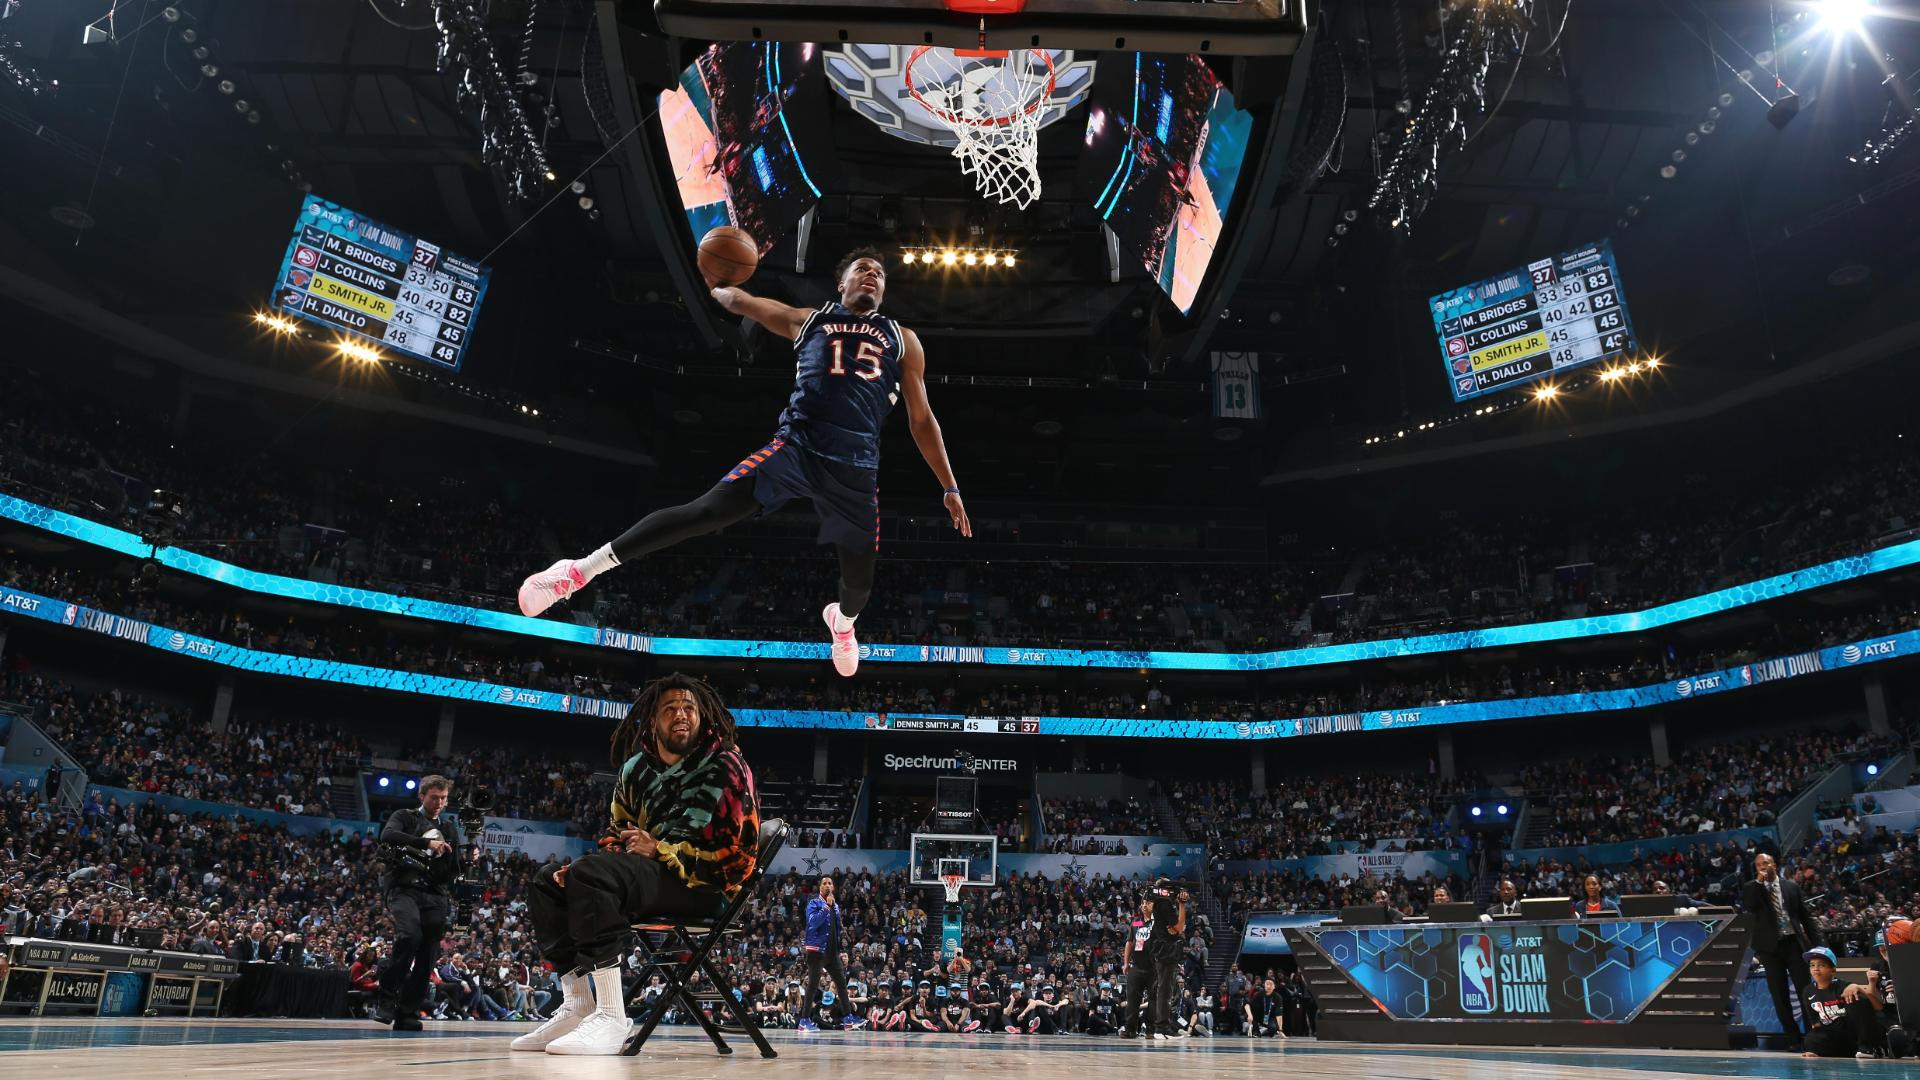 DSJ, J. Cole 'Work Out' ridiculously high-flying dunk